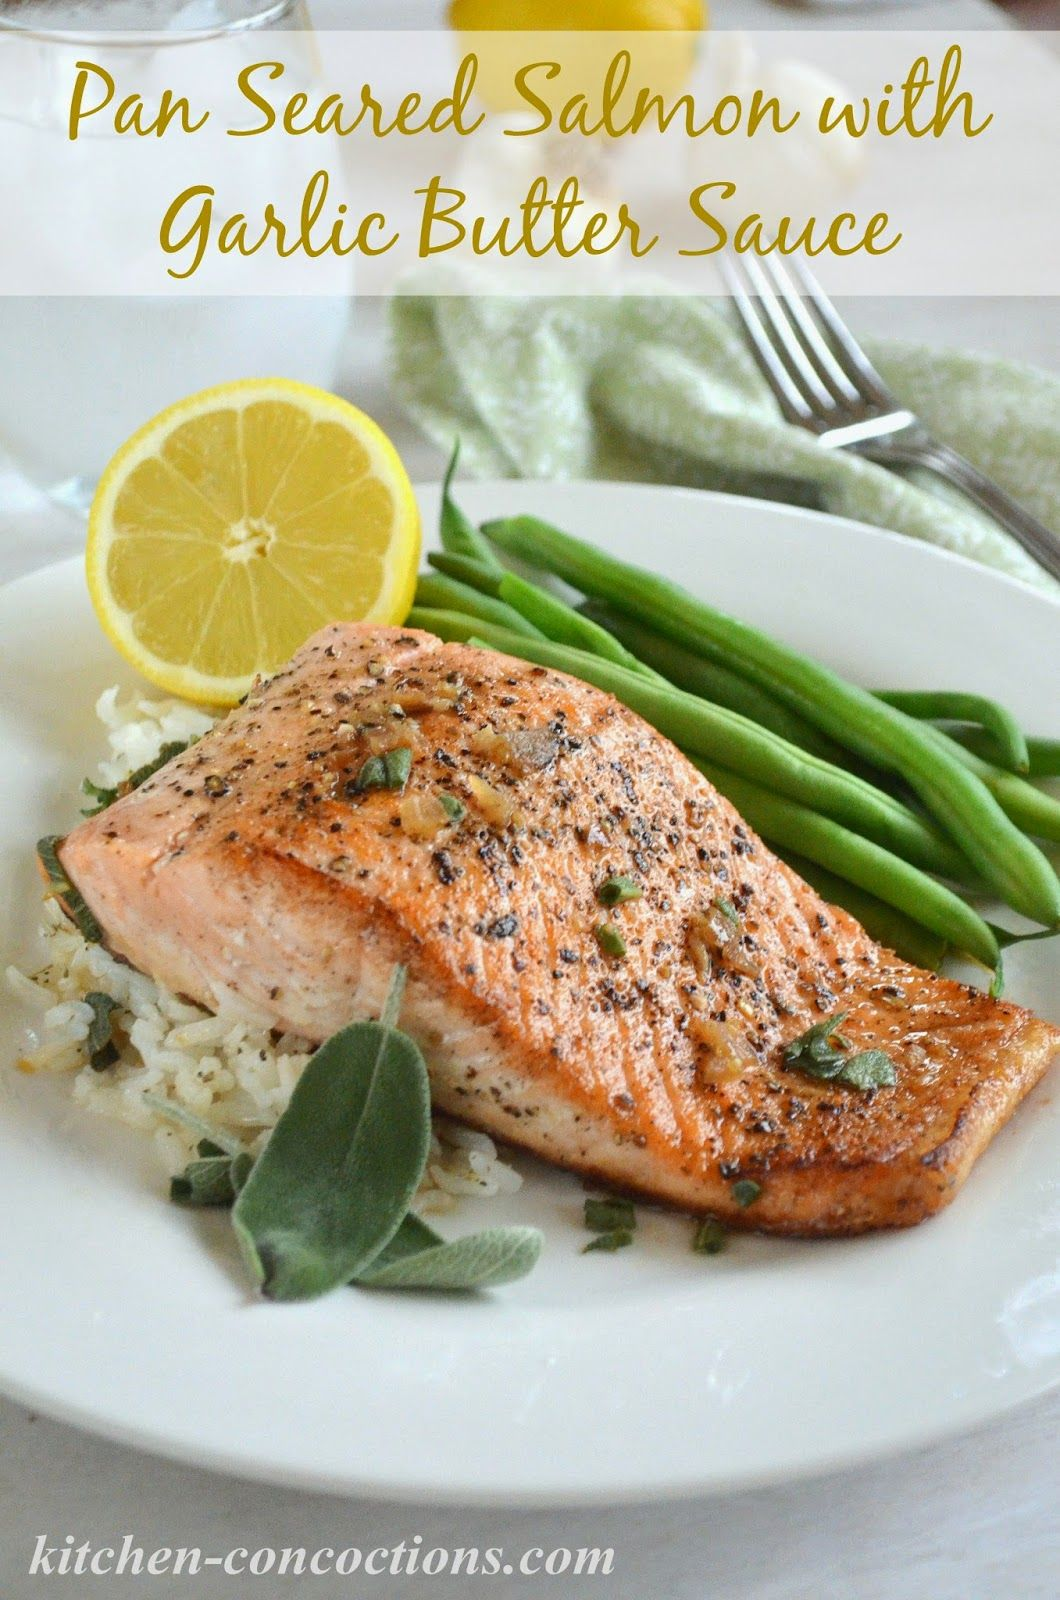 Pan Seared Salmon with Garlic Butter Sauce #ad #FoamSensations ...